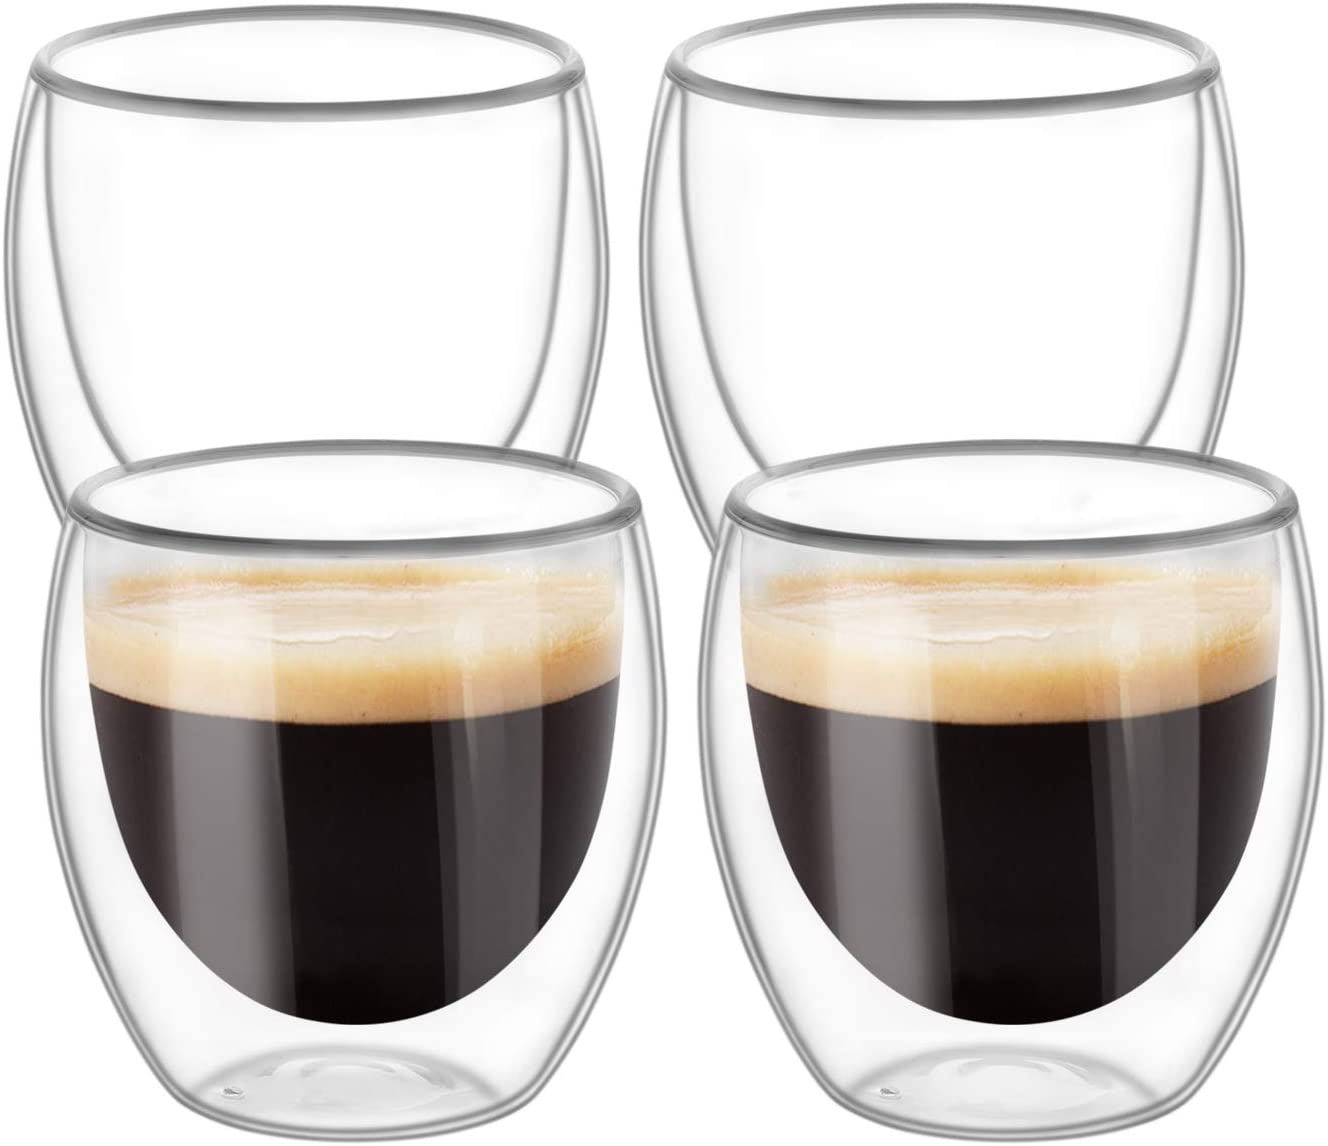 KTMAMA Double Wall Glass Coffee Mugs Set of 4 (8oz/250ml), Glass Cups for Hot Beverages,Thermal Insulated Borosilicate Glass Cups for Tea, Coffee, Latte, Cappuccino